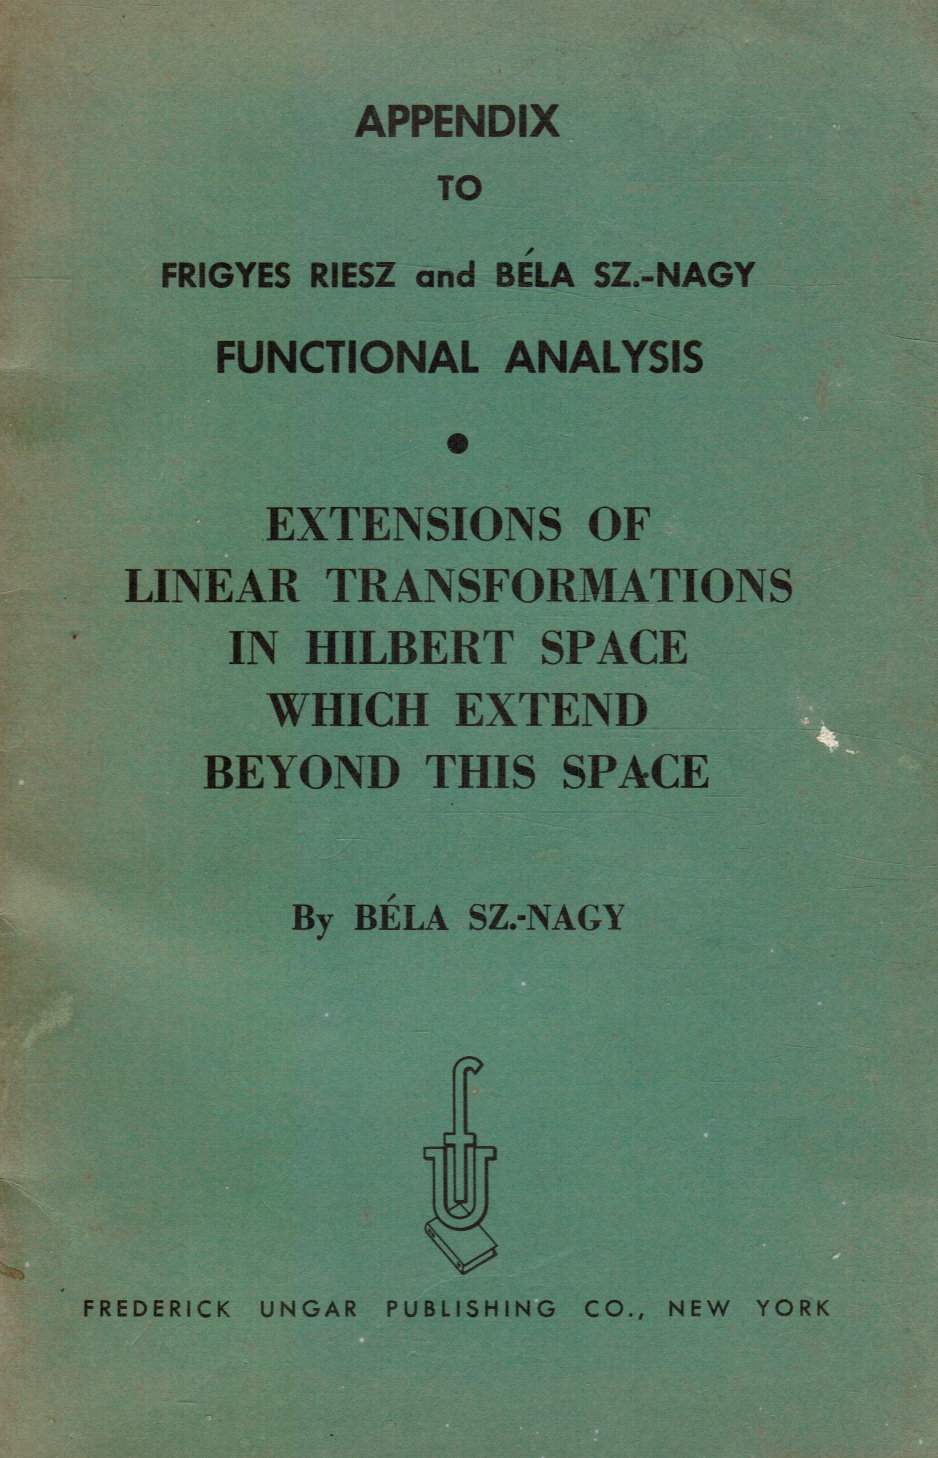 Image for Appendix to Frigyes Riesz and Bela Sz. -Nagy, Functional Analysis: Extensions of Linear Transformations in Hilbert Space Which Extend Beyond This Space